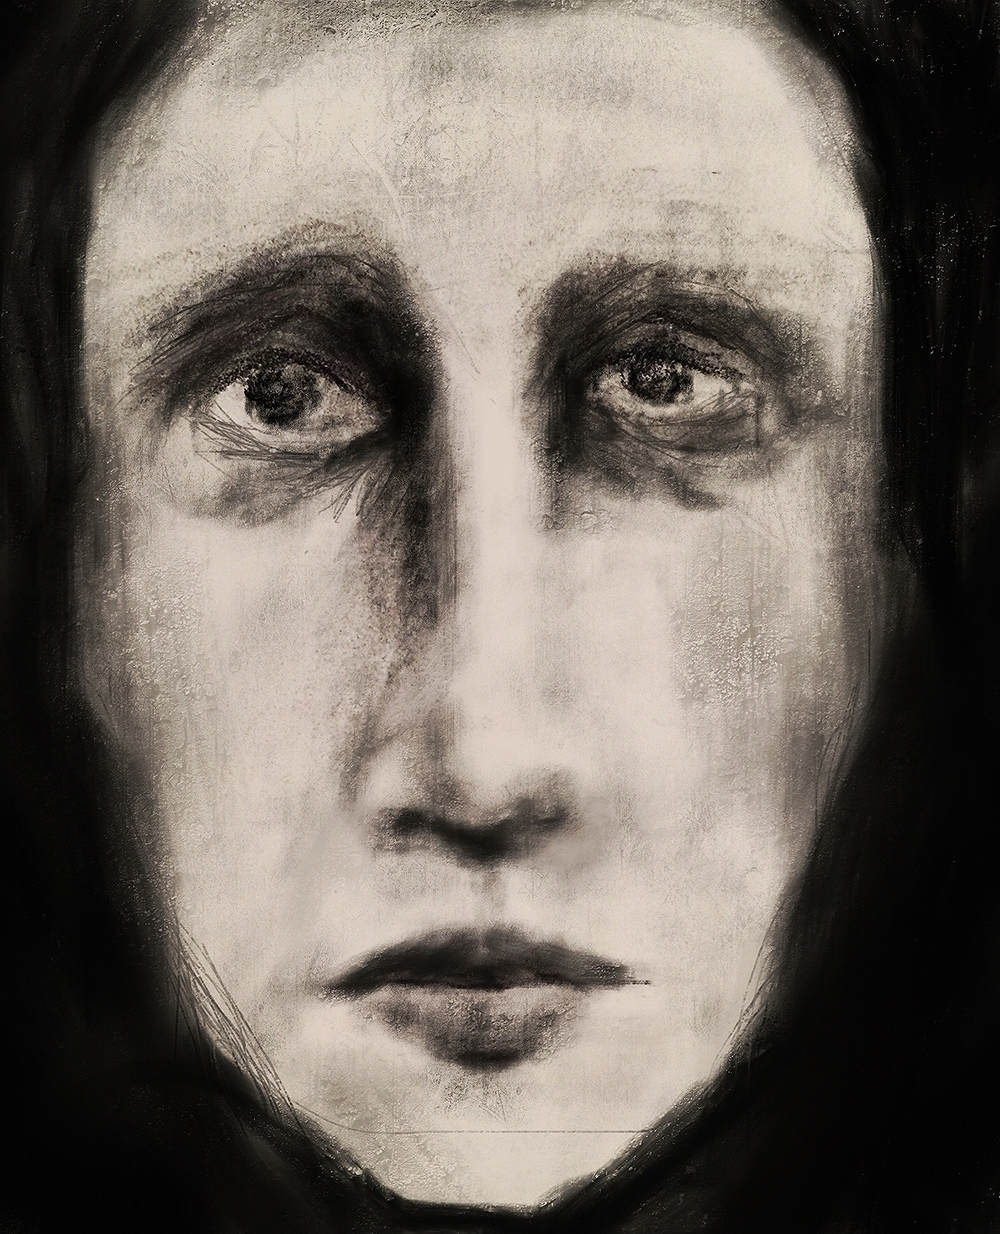 I created this image very late  at night using the deepest and darkest charcoal I could find. I have a lot of emotions connected to my art and this image has a story to tell that I do not yet know how to put into words.